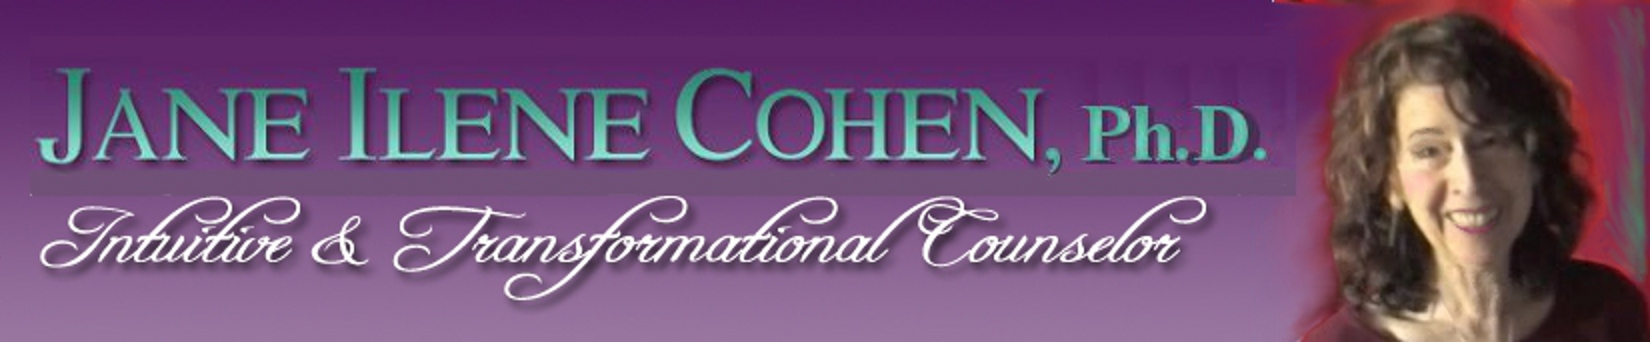 Jane Ilene Cohen, Ph.D., Intuitive & Transformational Counselor, NLP & TimeLine Master Practitioner, Jane Cohen Counseling Services